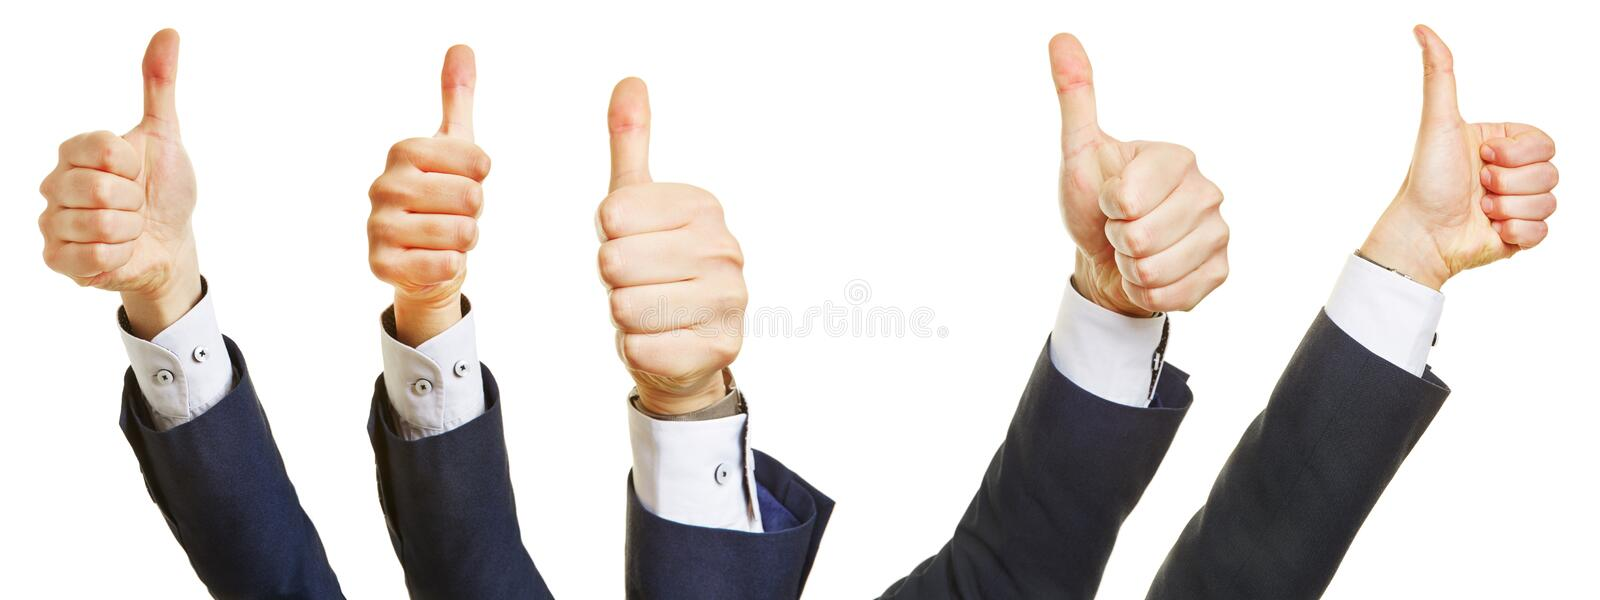 Business people holding many thumbs up royalty free stock photo